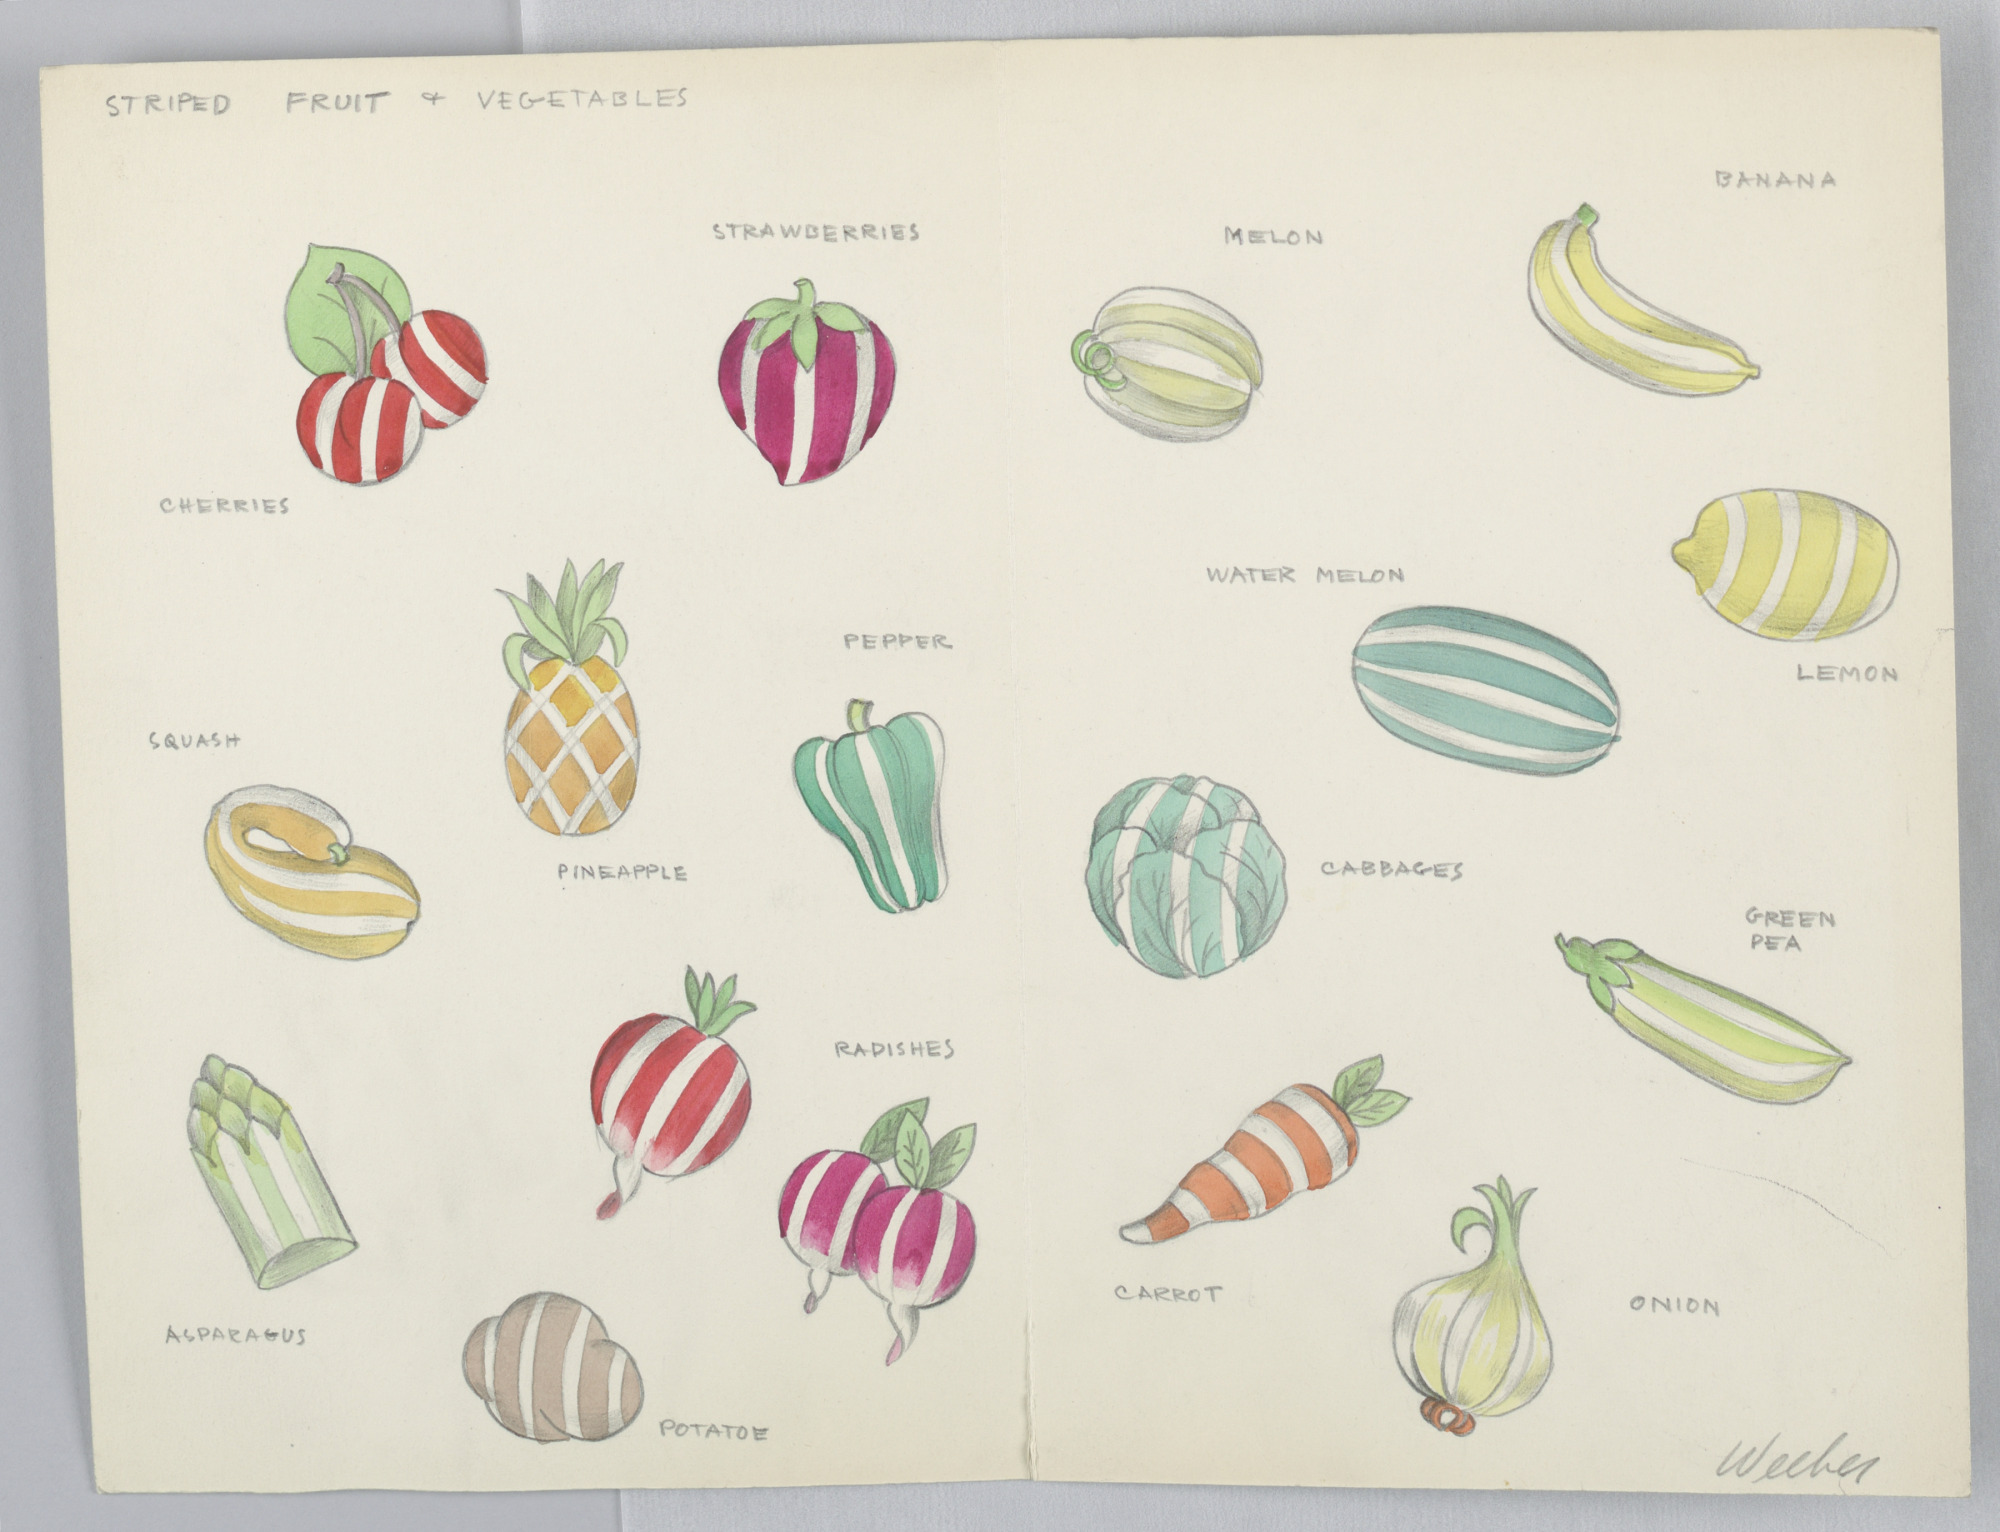 images for Button Design: Striped Fruit and Vegetables